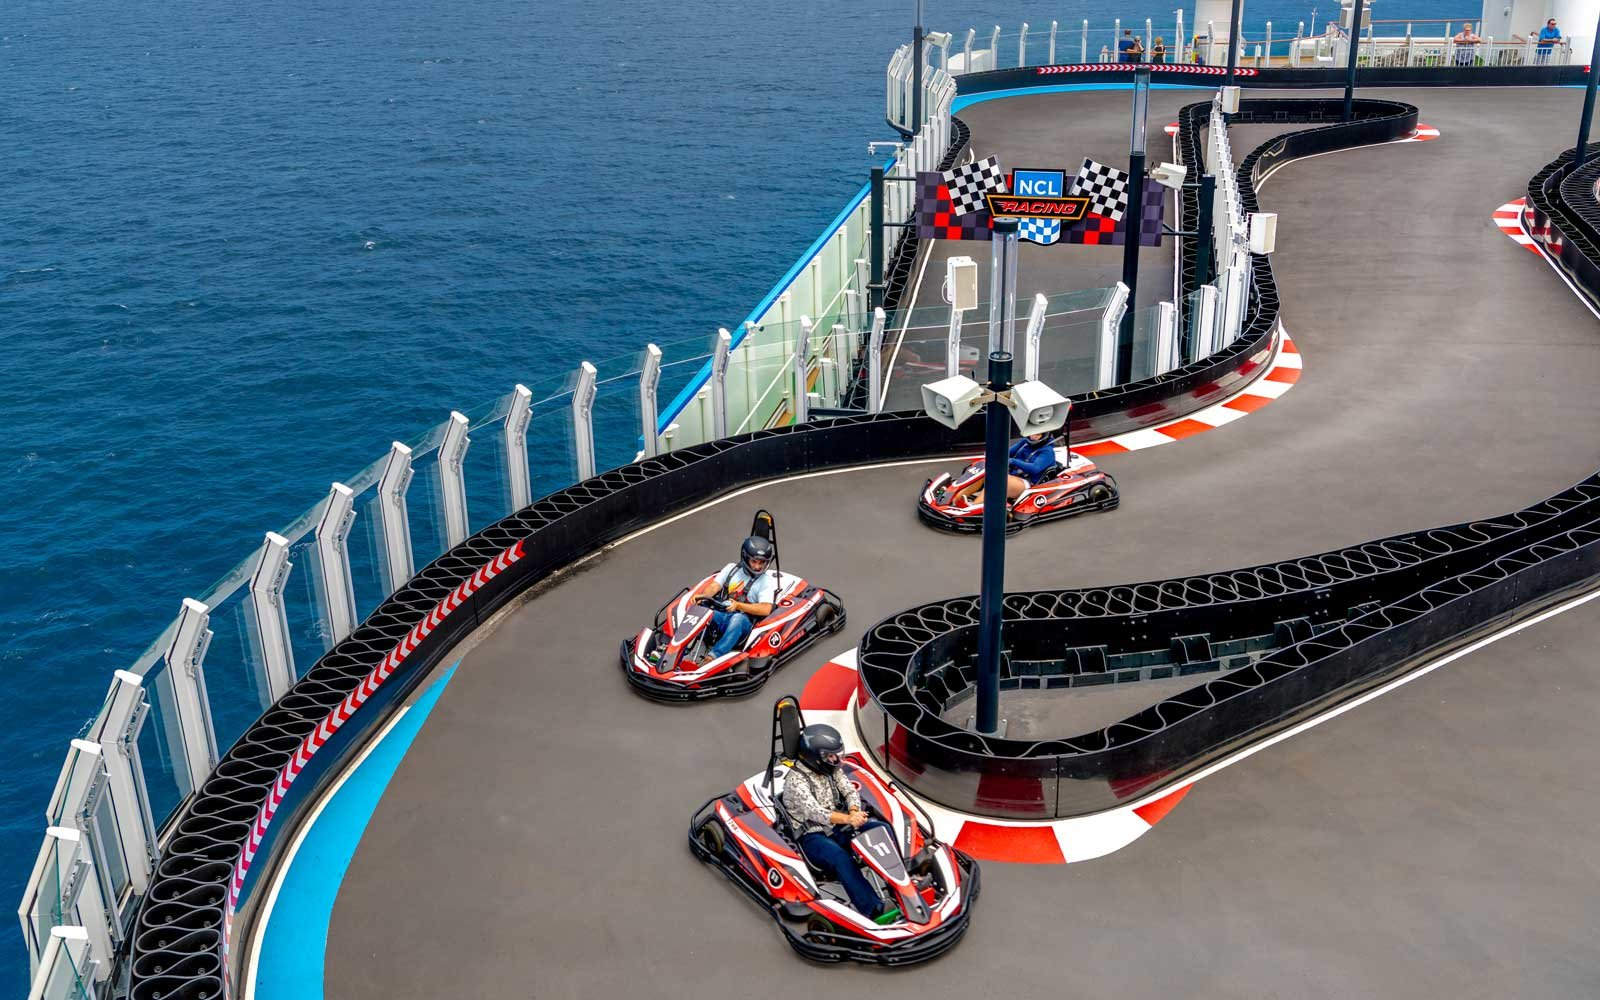 Go Kart racing on board the Norwegian Bliss cruise ship